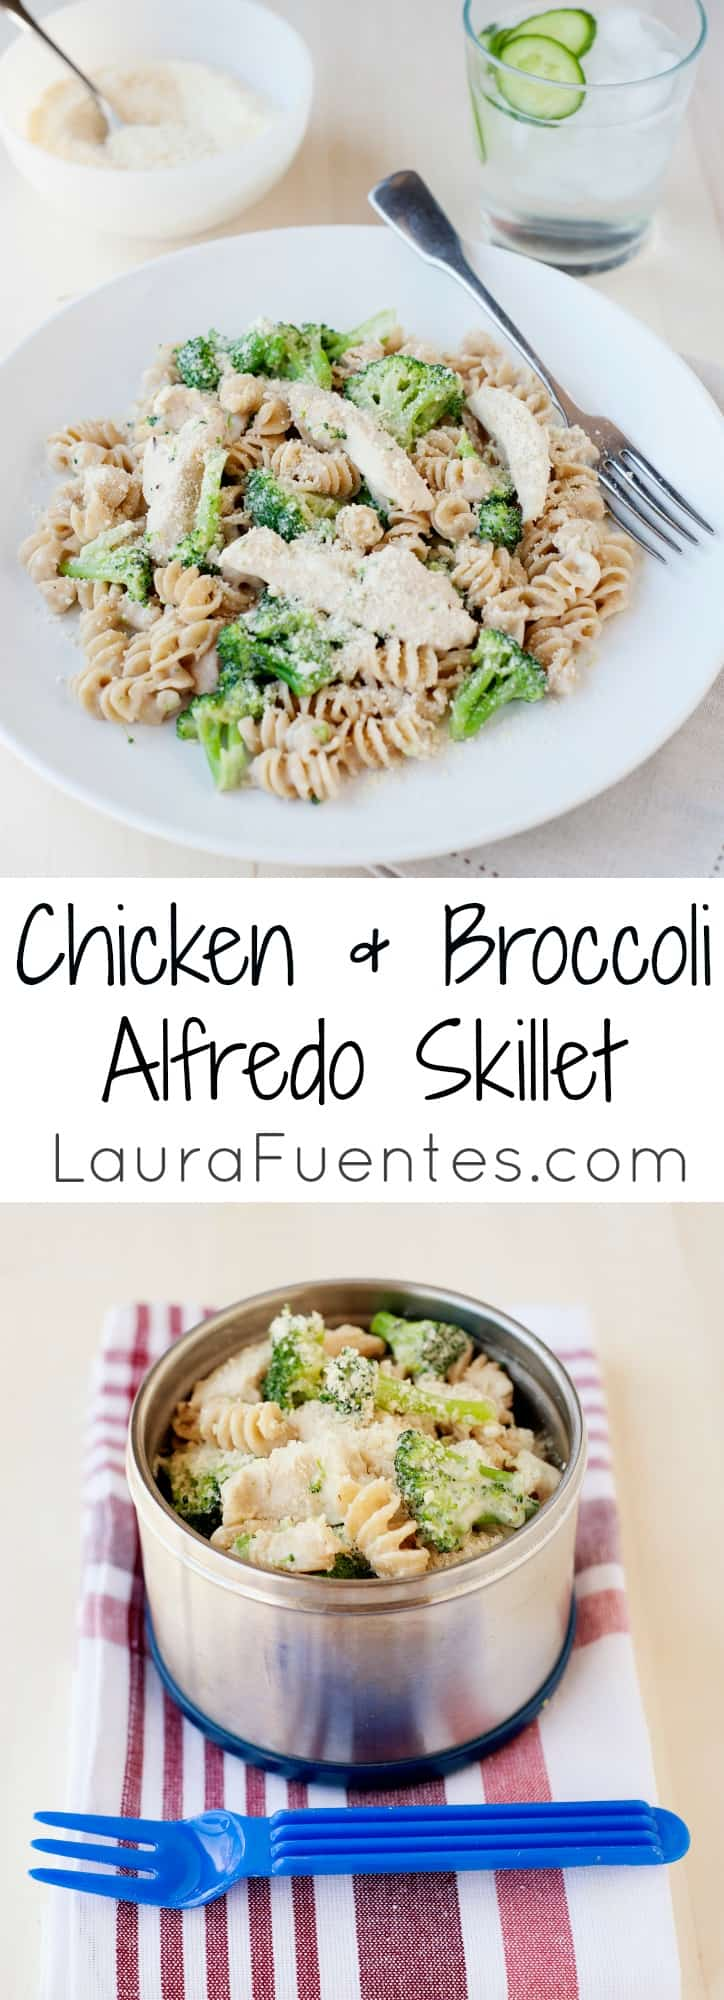 Easy chicken and broccoli alfredo skillet meal from the fridge to the table in less than 30 minutes that your family will love.